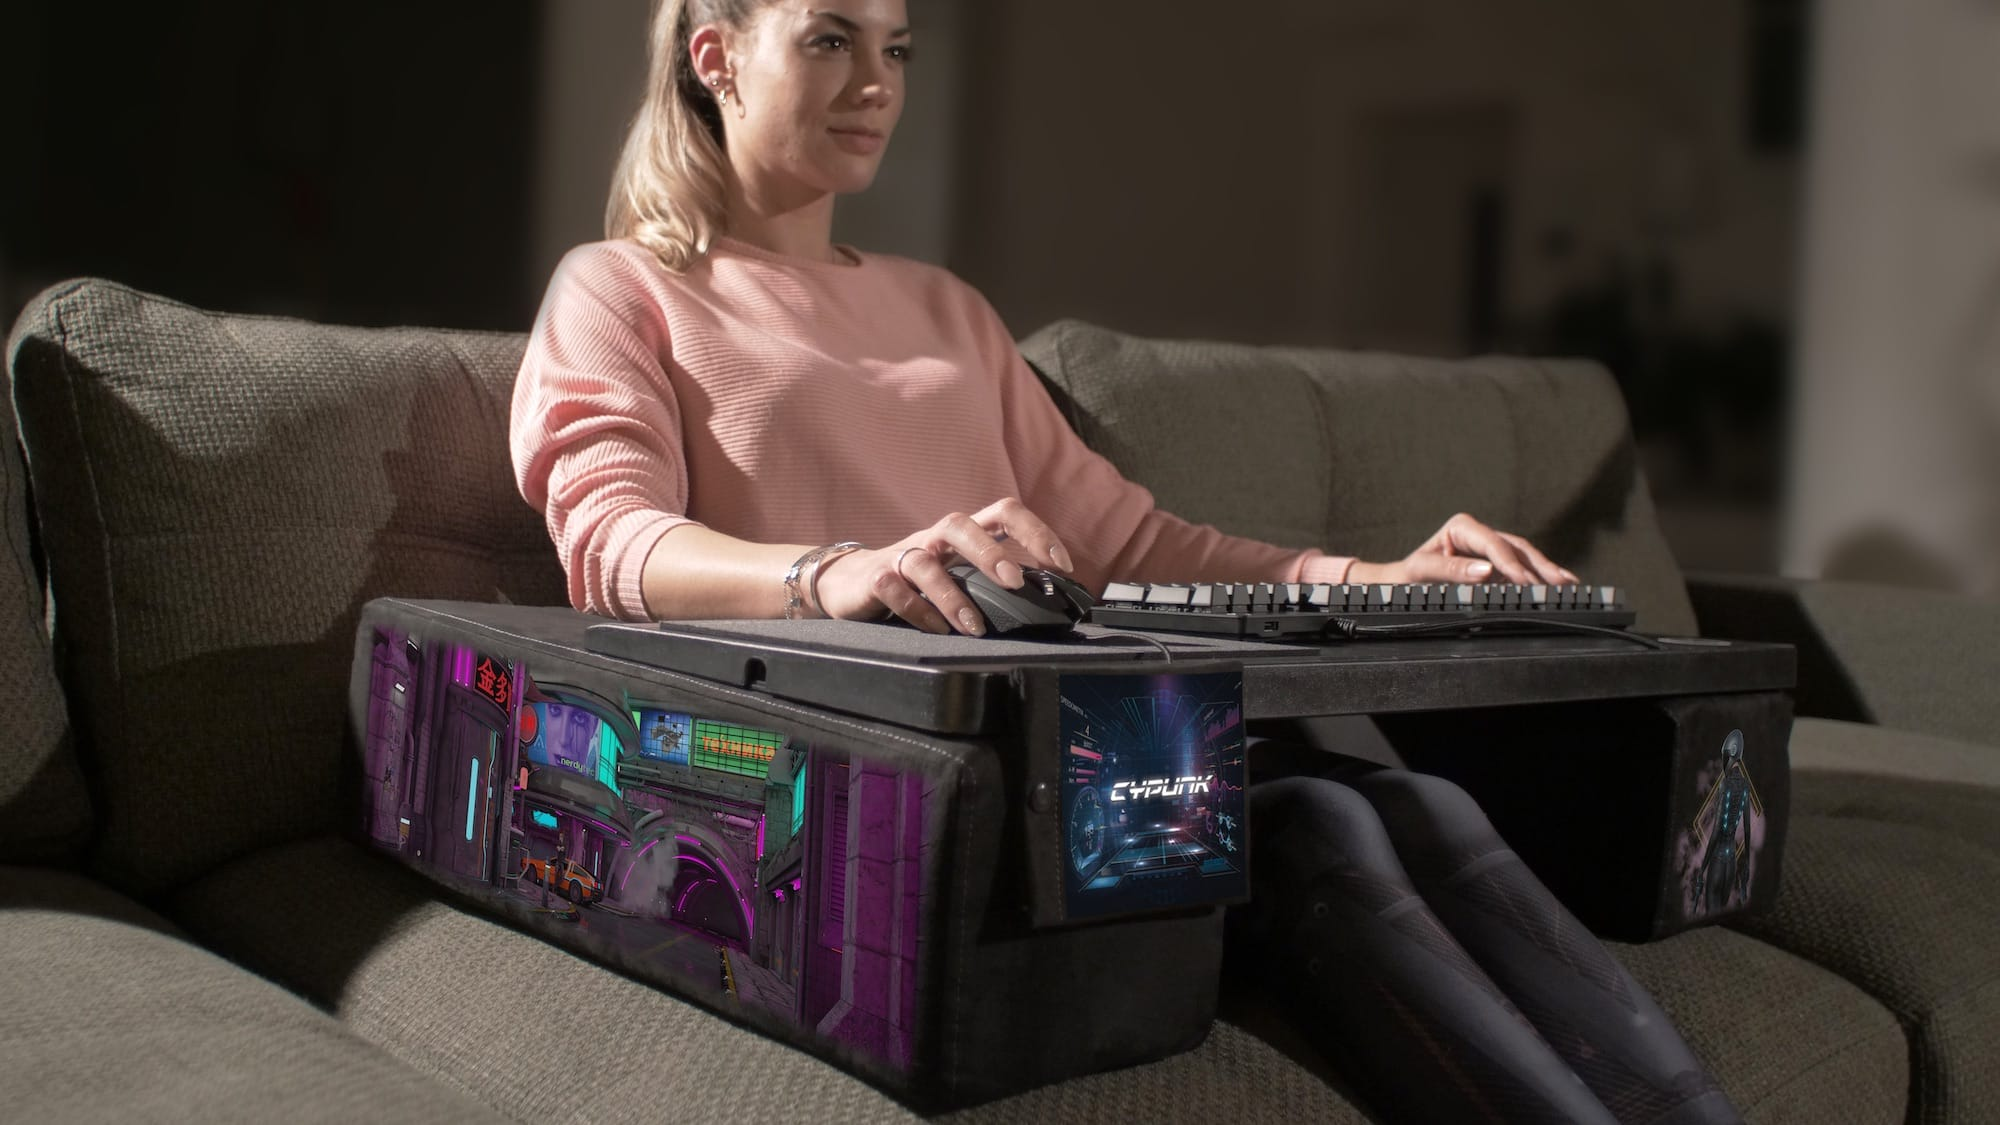 Couchmaster CYPUNK Limited Edition cyberpunk couch desk has 80s colors and the DeLorean